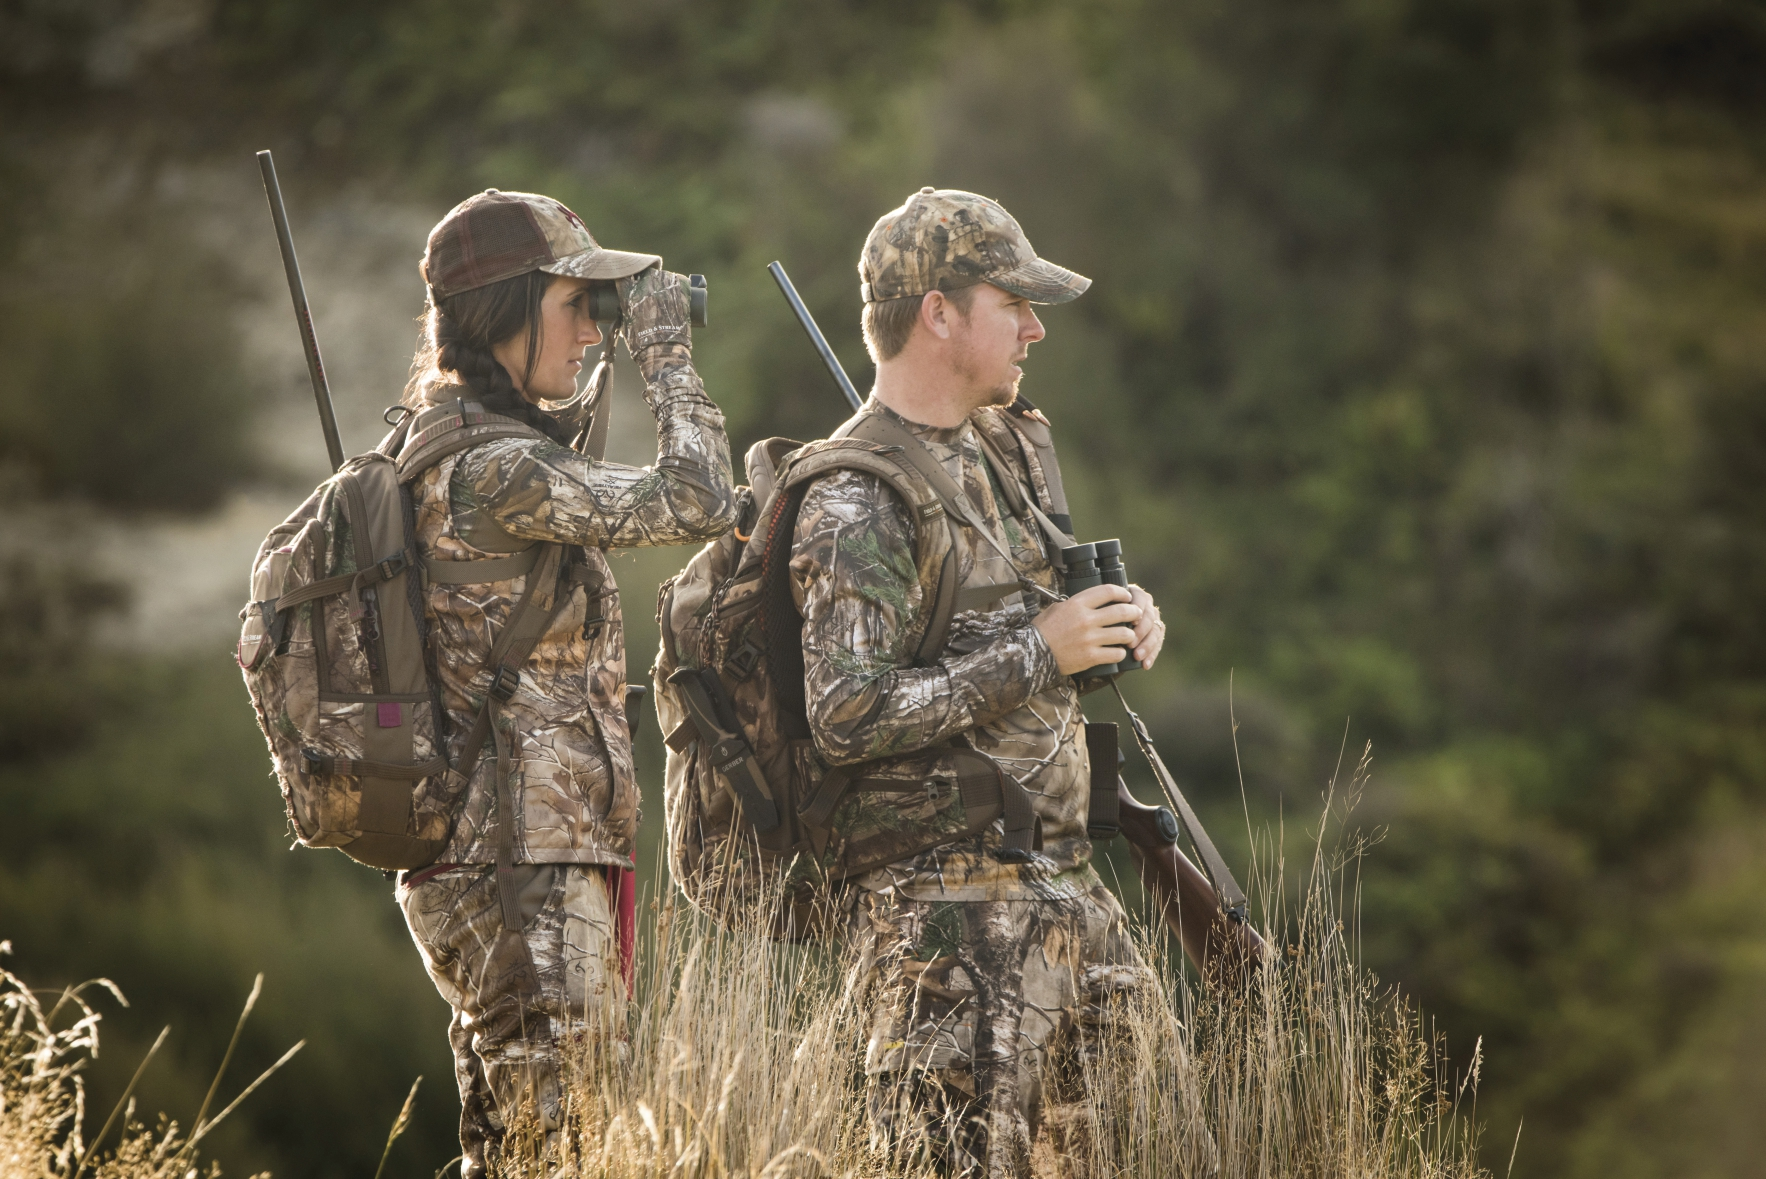 26+ Camo Hunting Vest With Game Bag Wallpapers